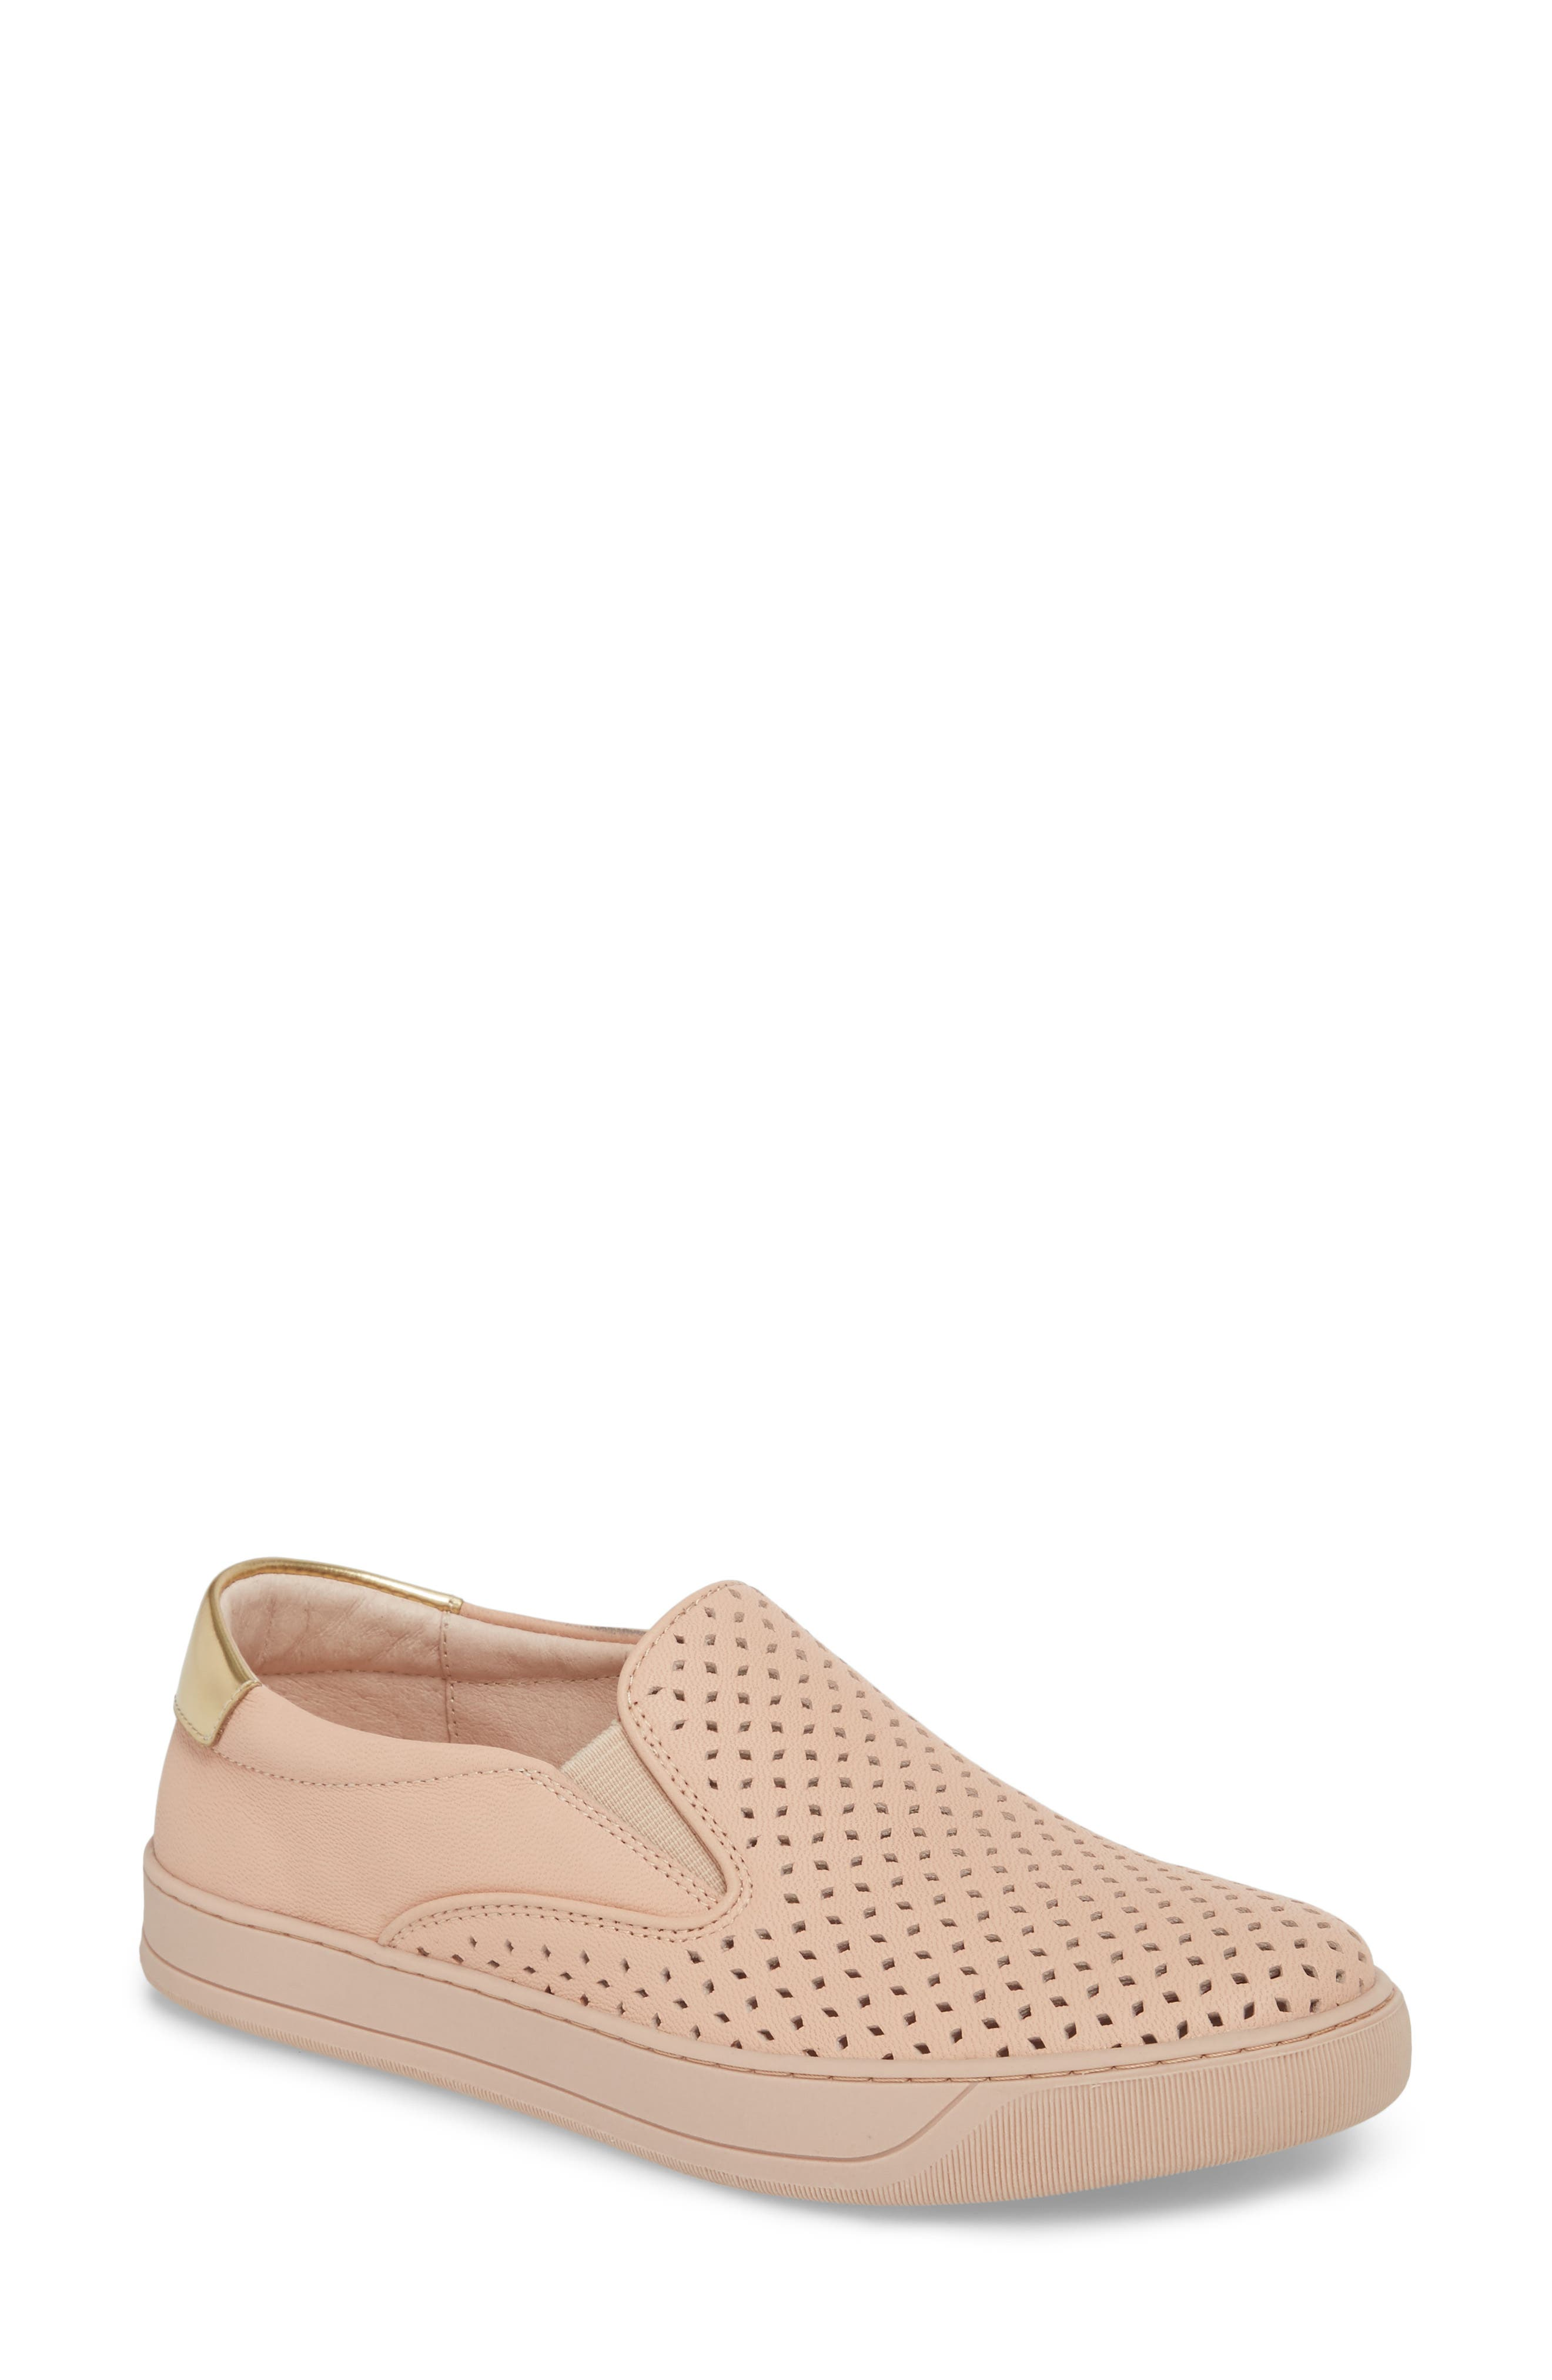 Elaine Slip-On Sneaker,                         Main,                         color, Pink Leather